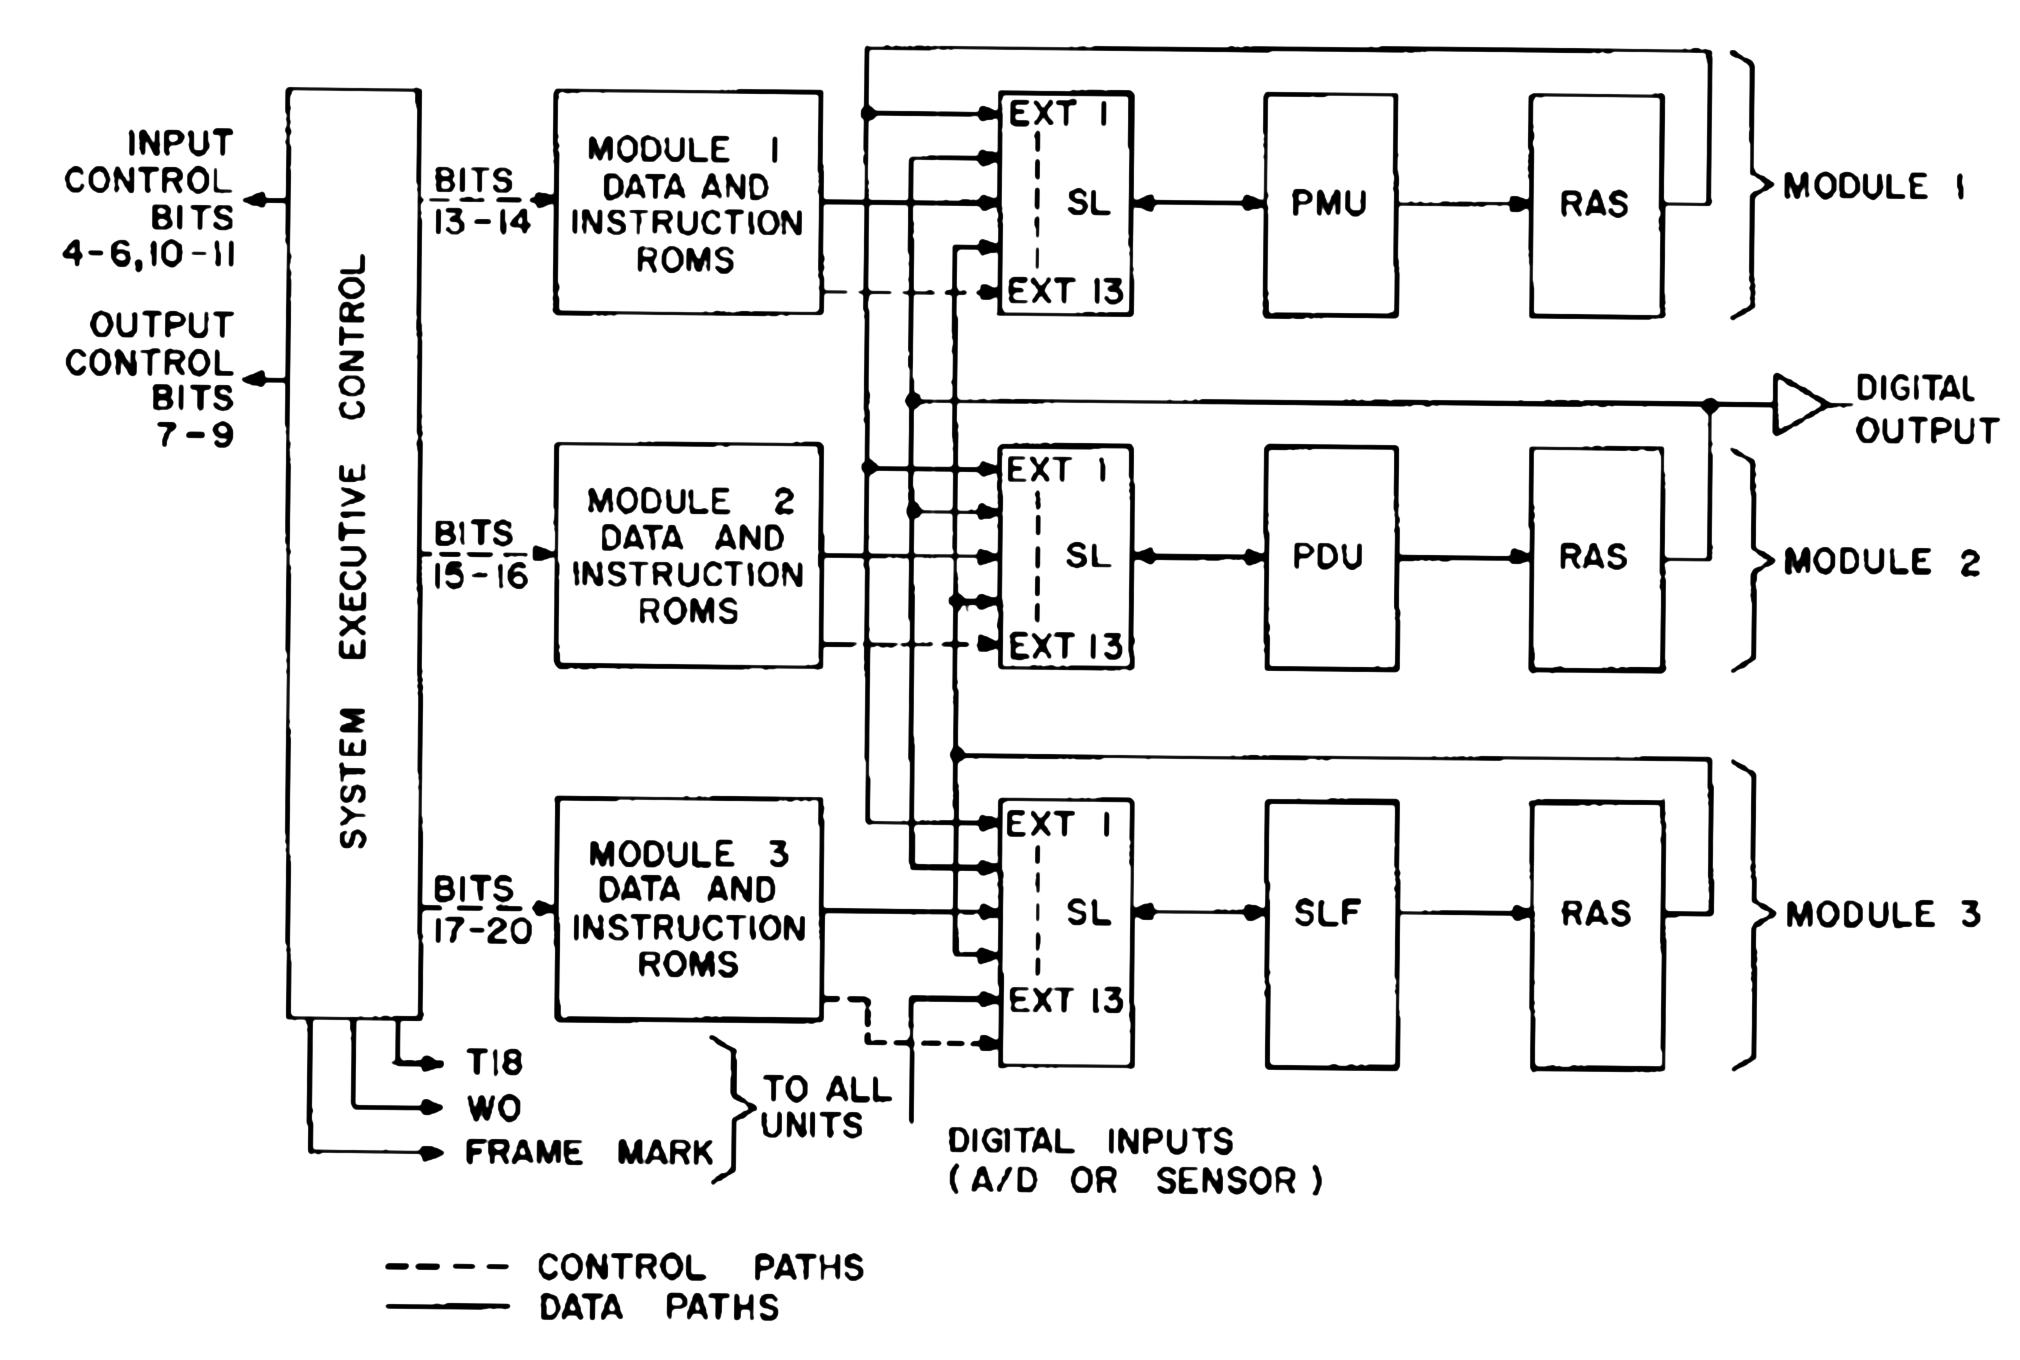 Ken shirriffs blog may 2015 block diagram of the f14a cadc computer from architecture of a microprocessor pooptronica